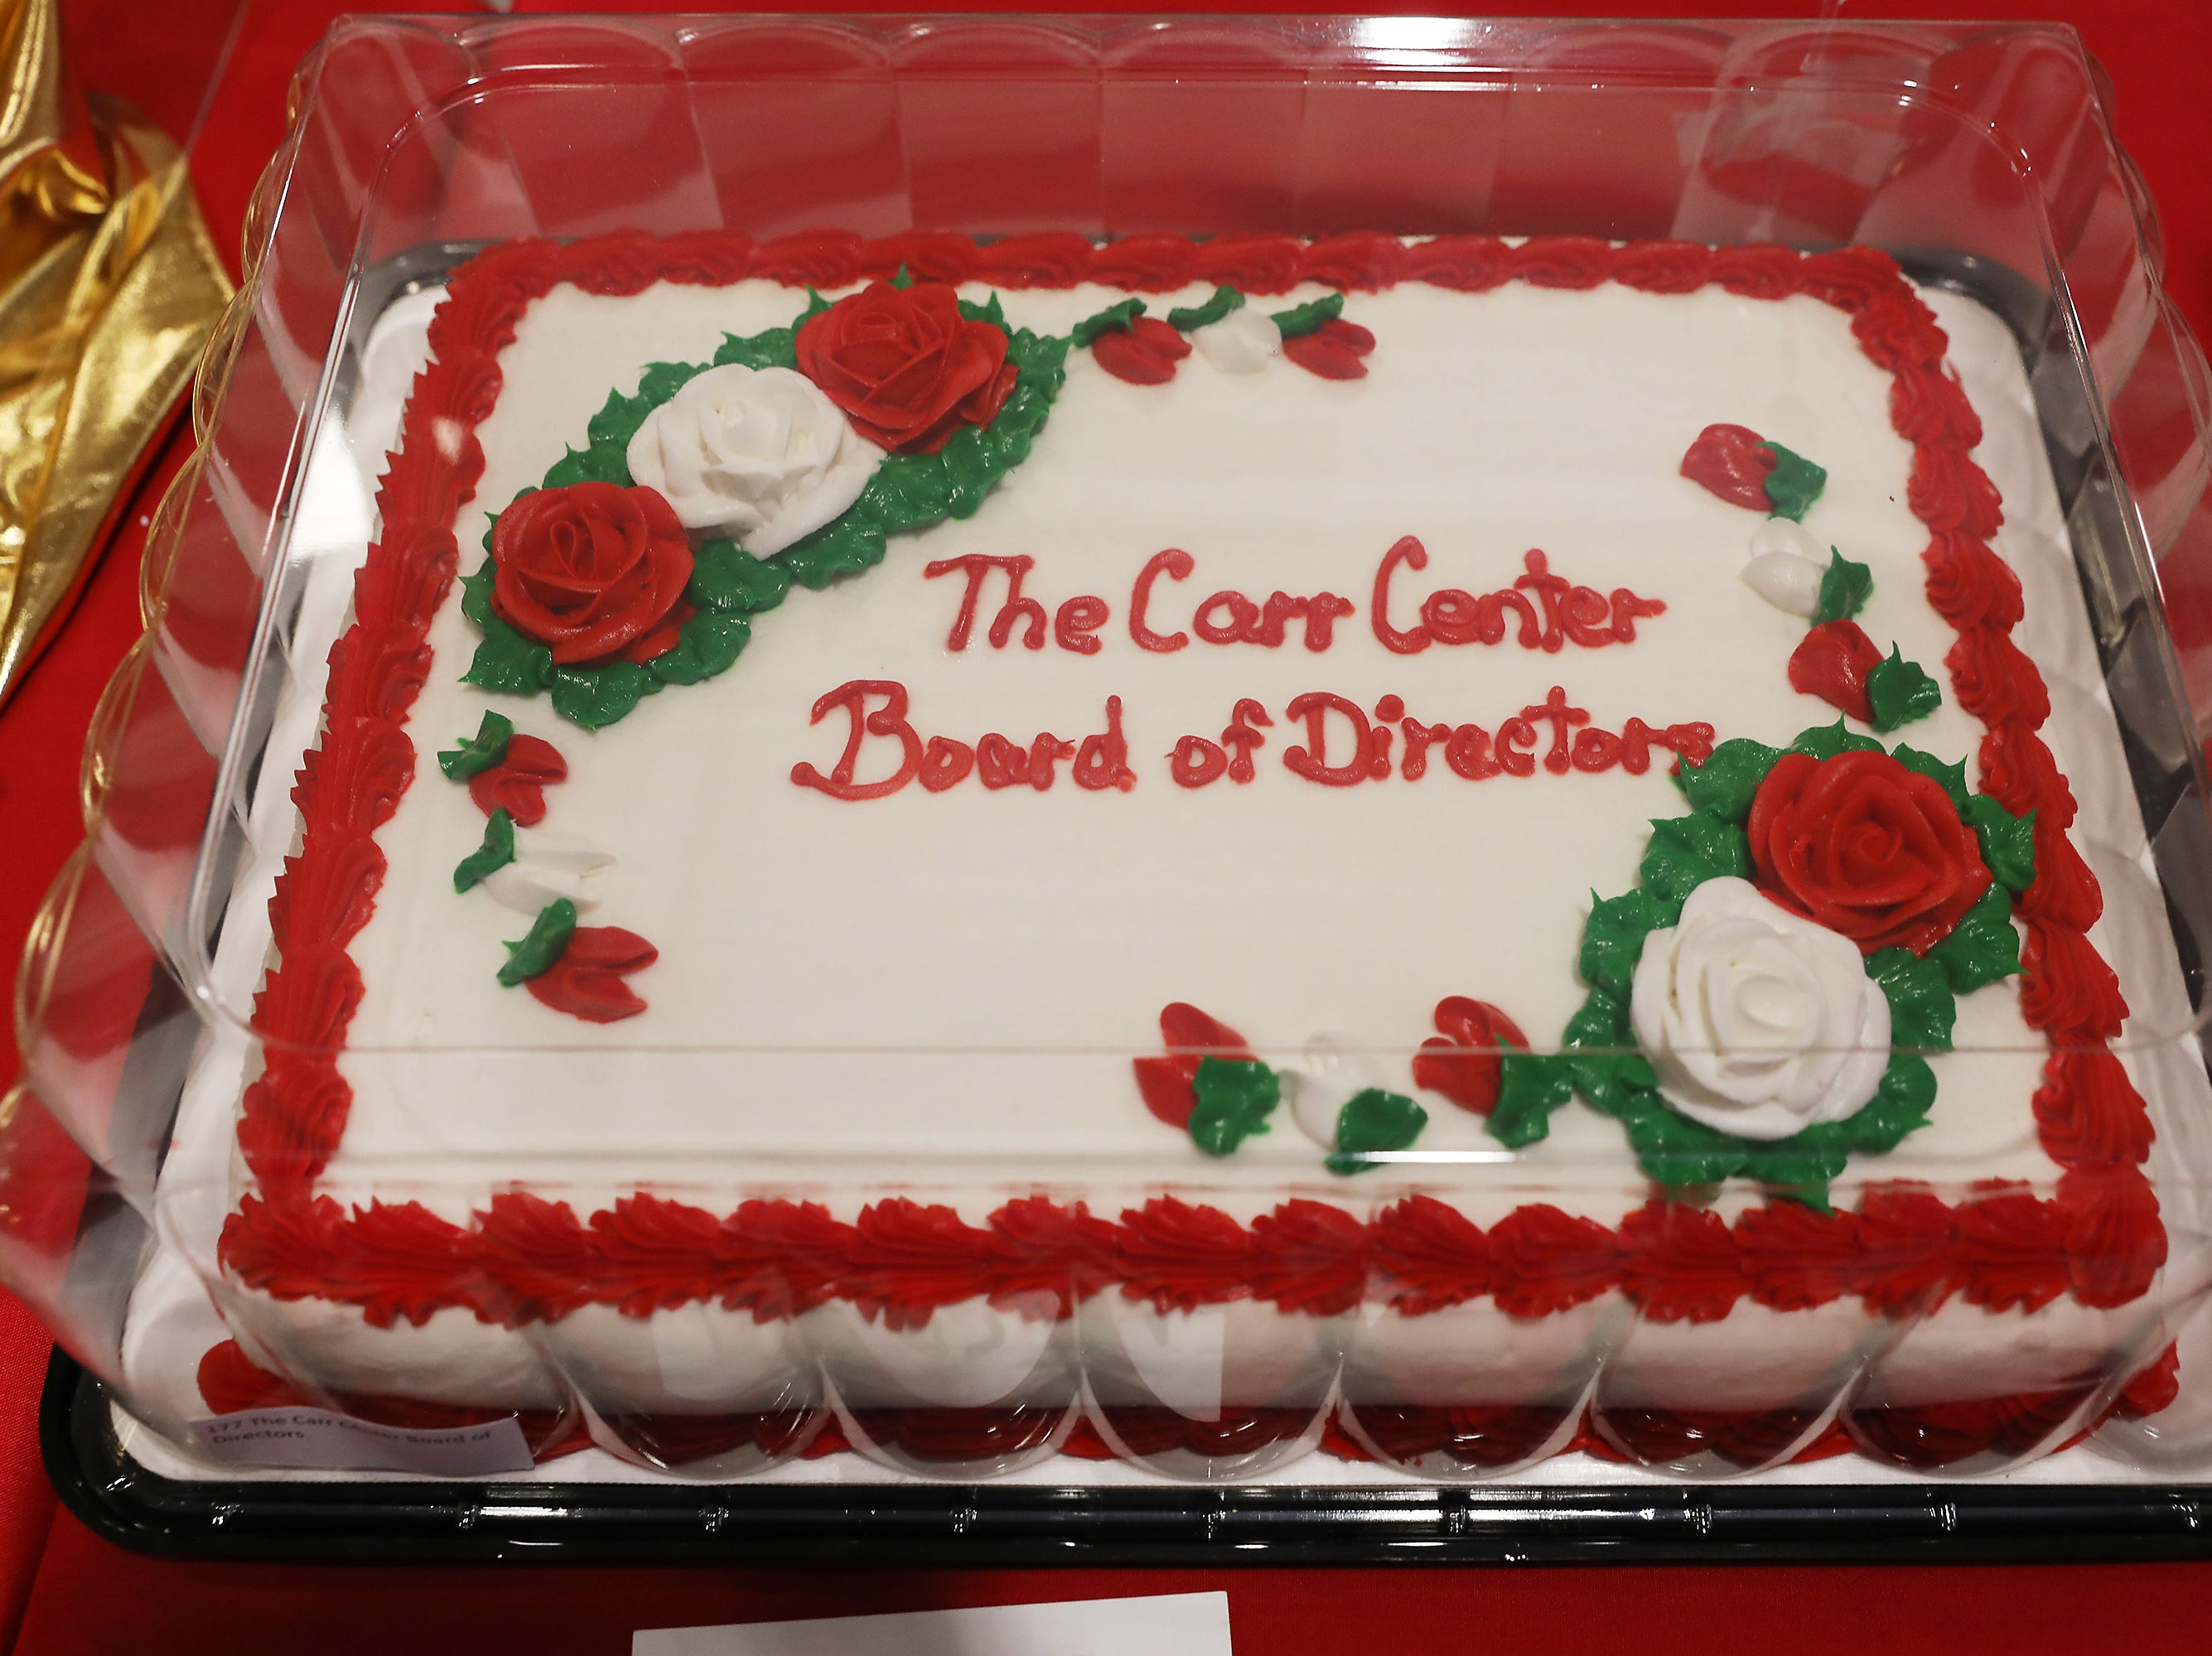 4:30 P.M. Thursday cake 177 The Carr Center Board of Directors - $500 gift card to The Wilds.